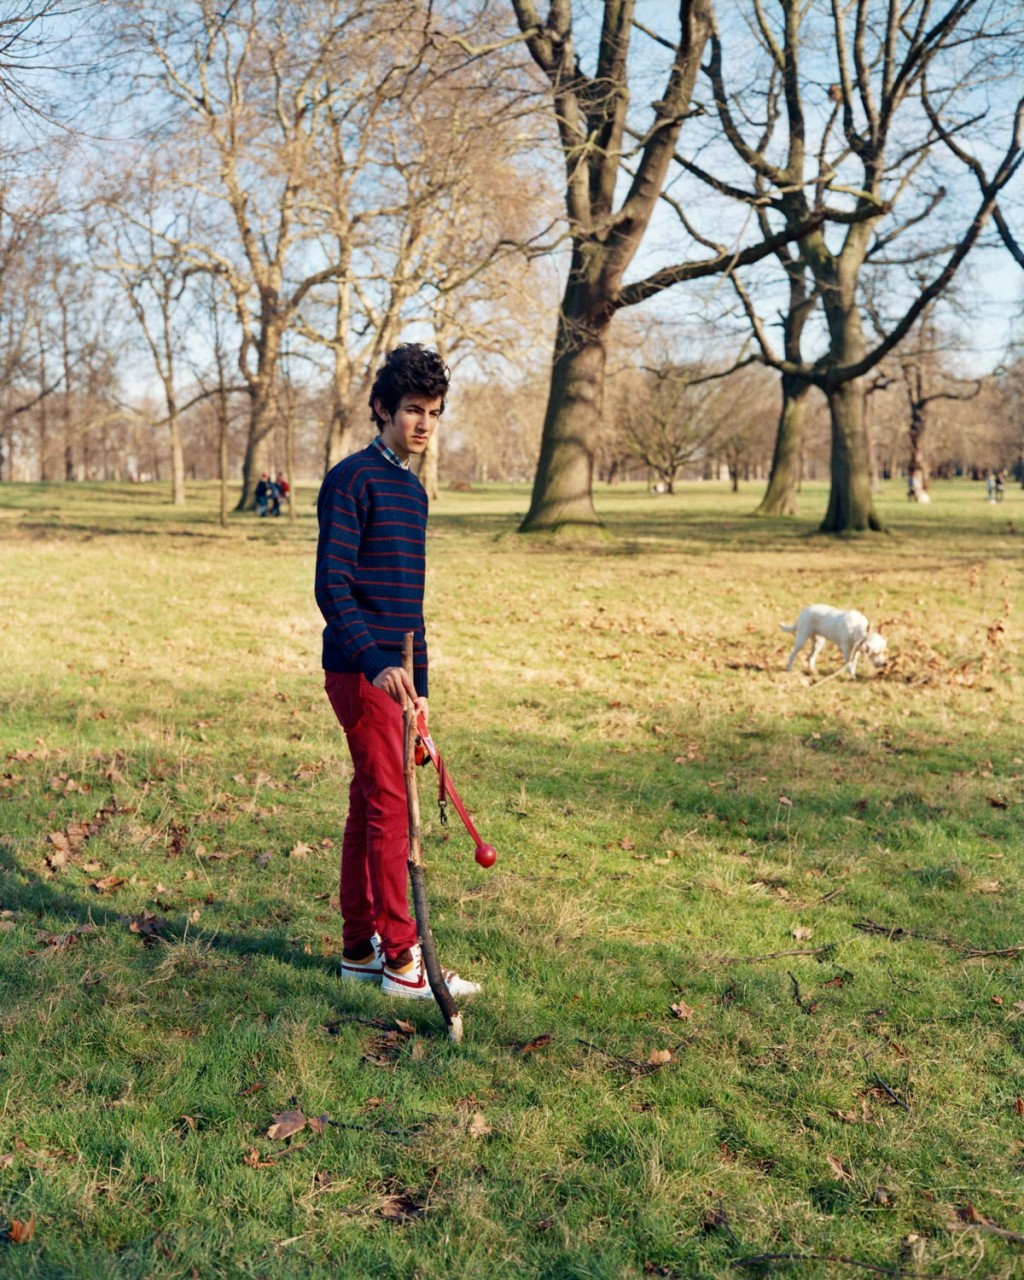 Dogwalker-London-2008